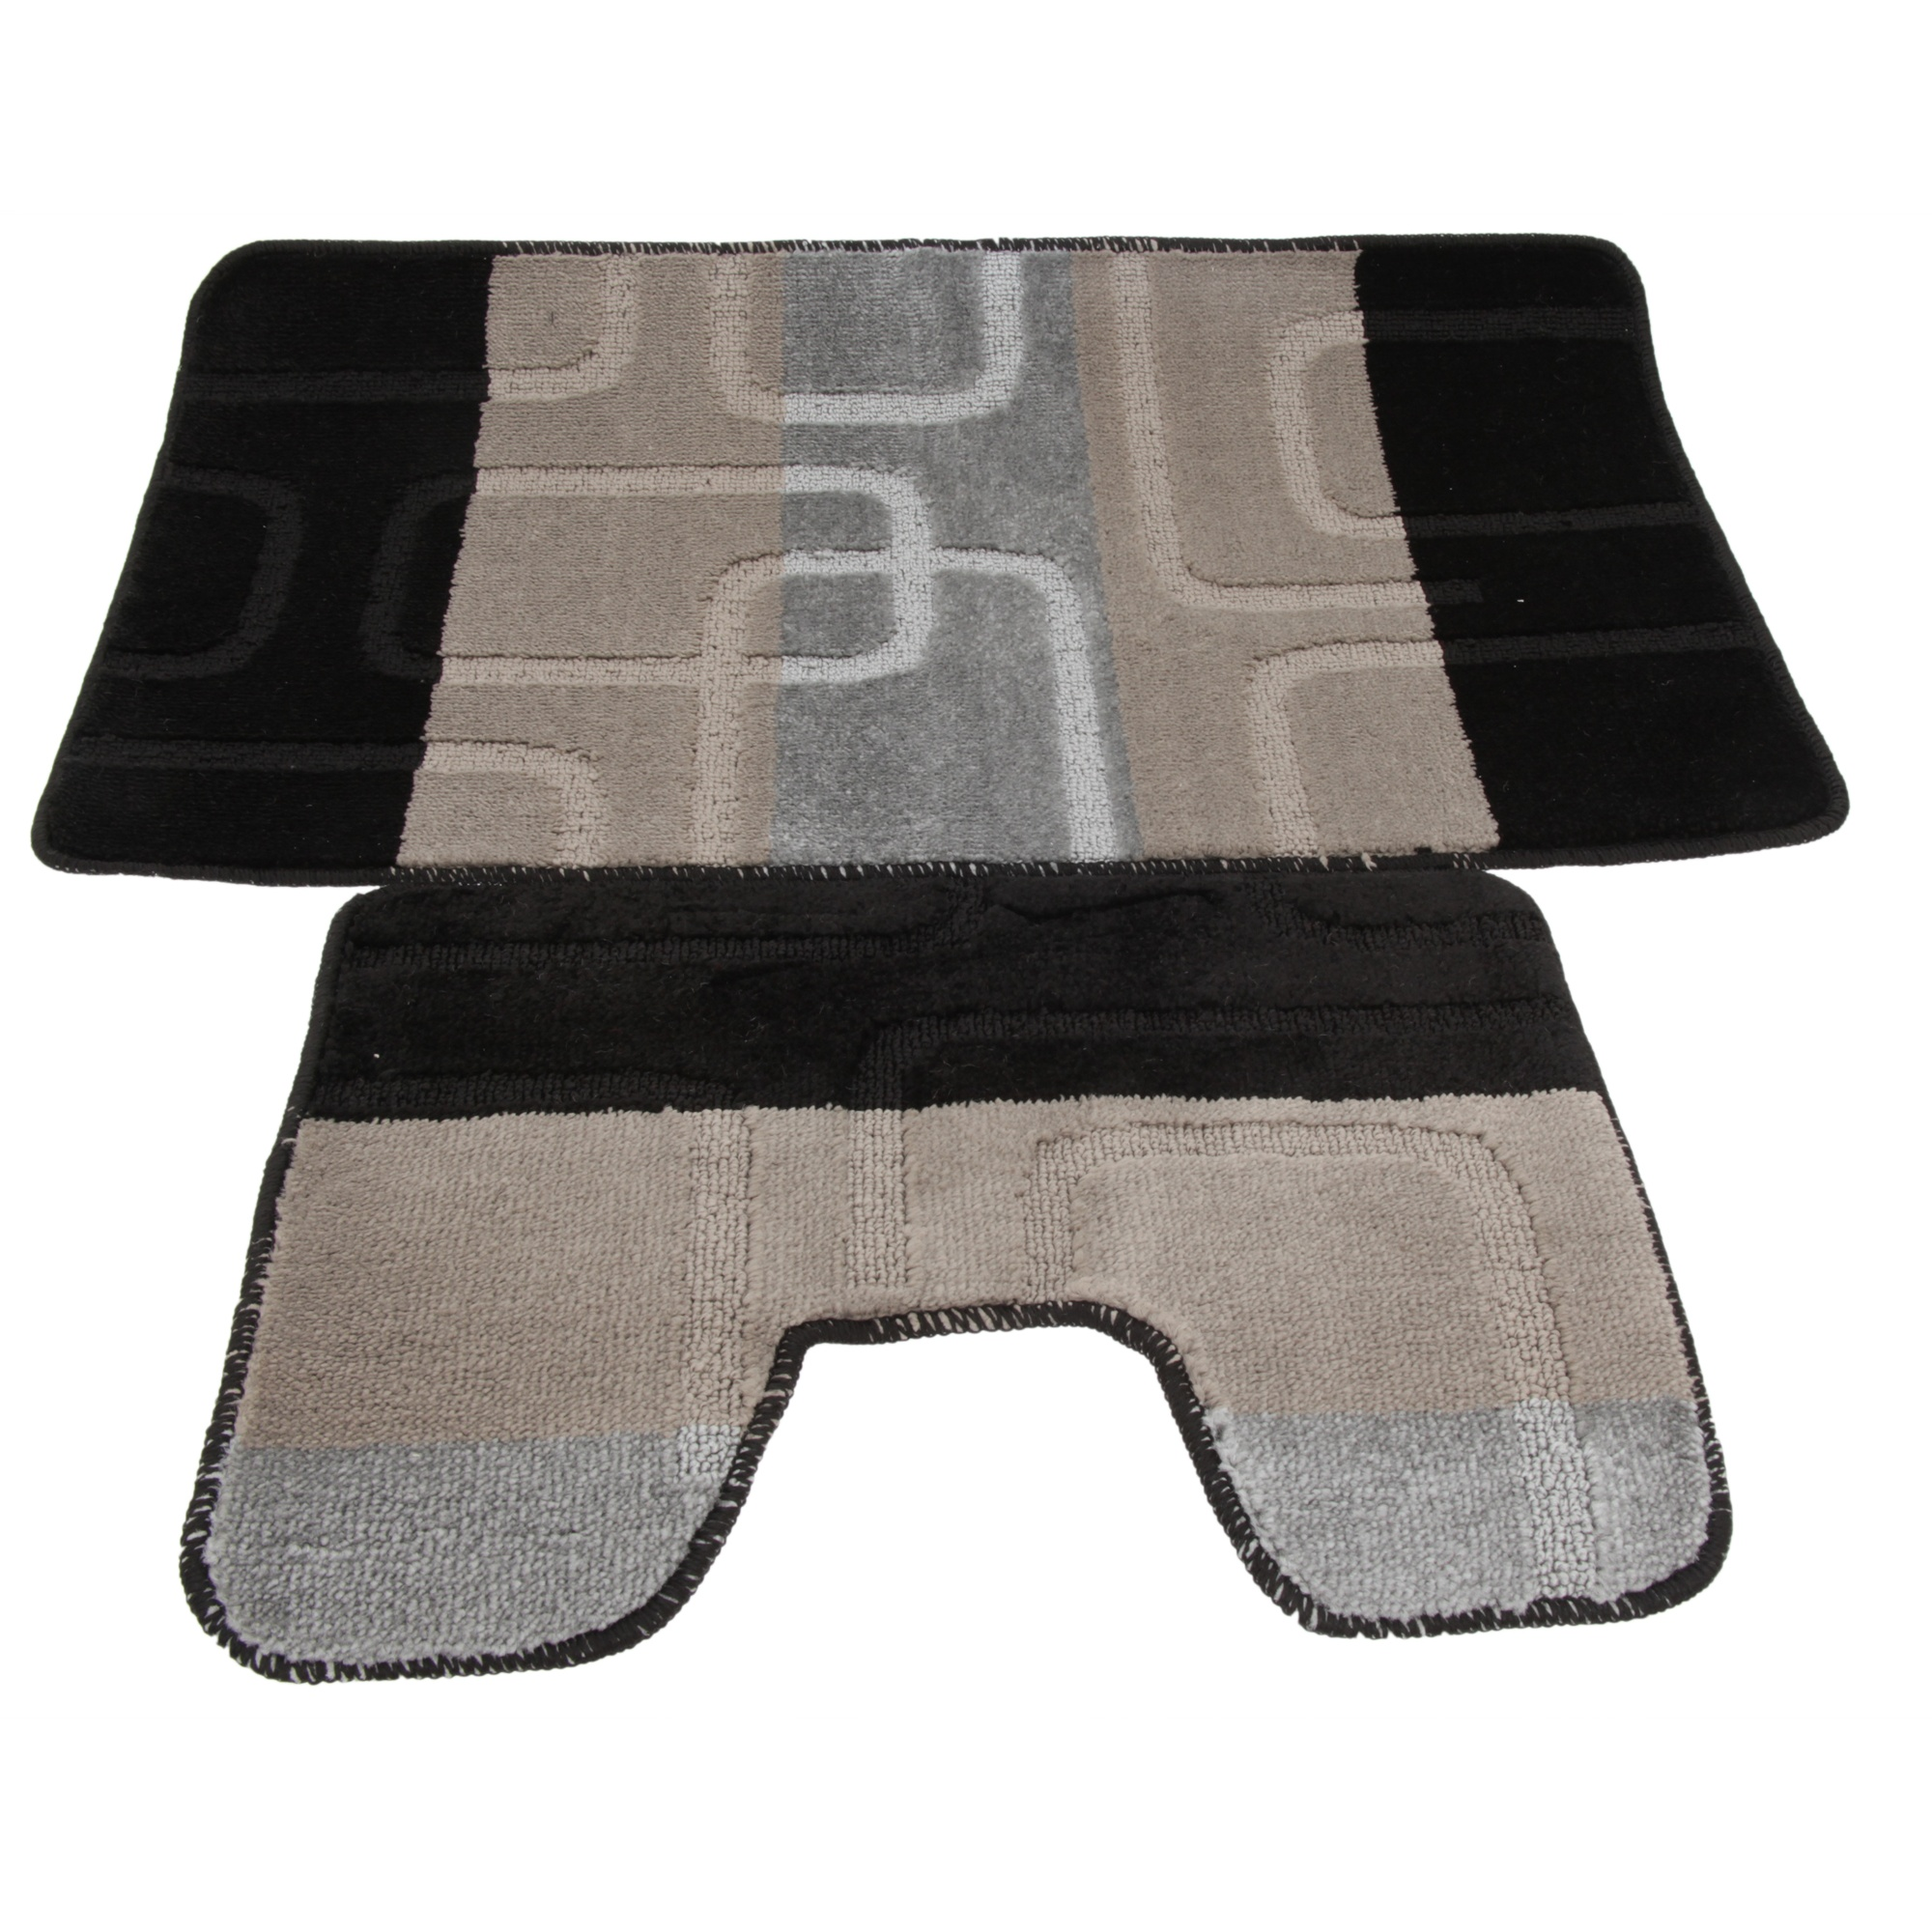 ensemble tapis de bain et contour de wc 5 couleurs utbr191 ebay. Black Bedroom Furniture Sets. Home Design Ideas